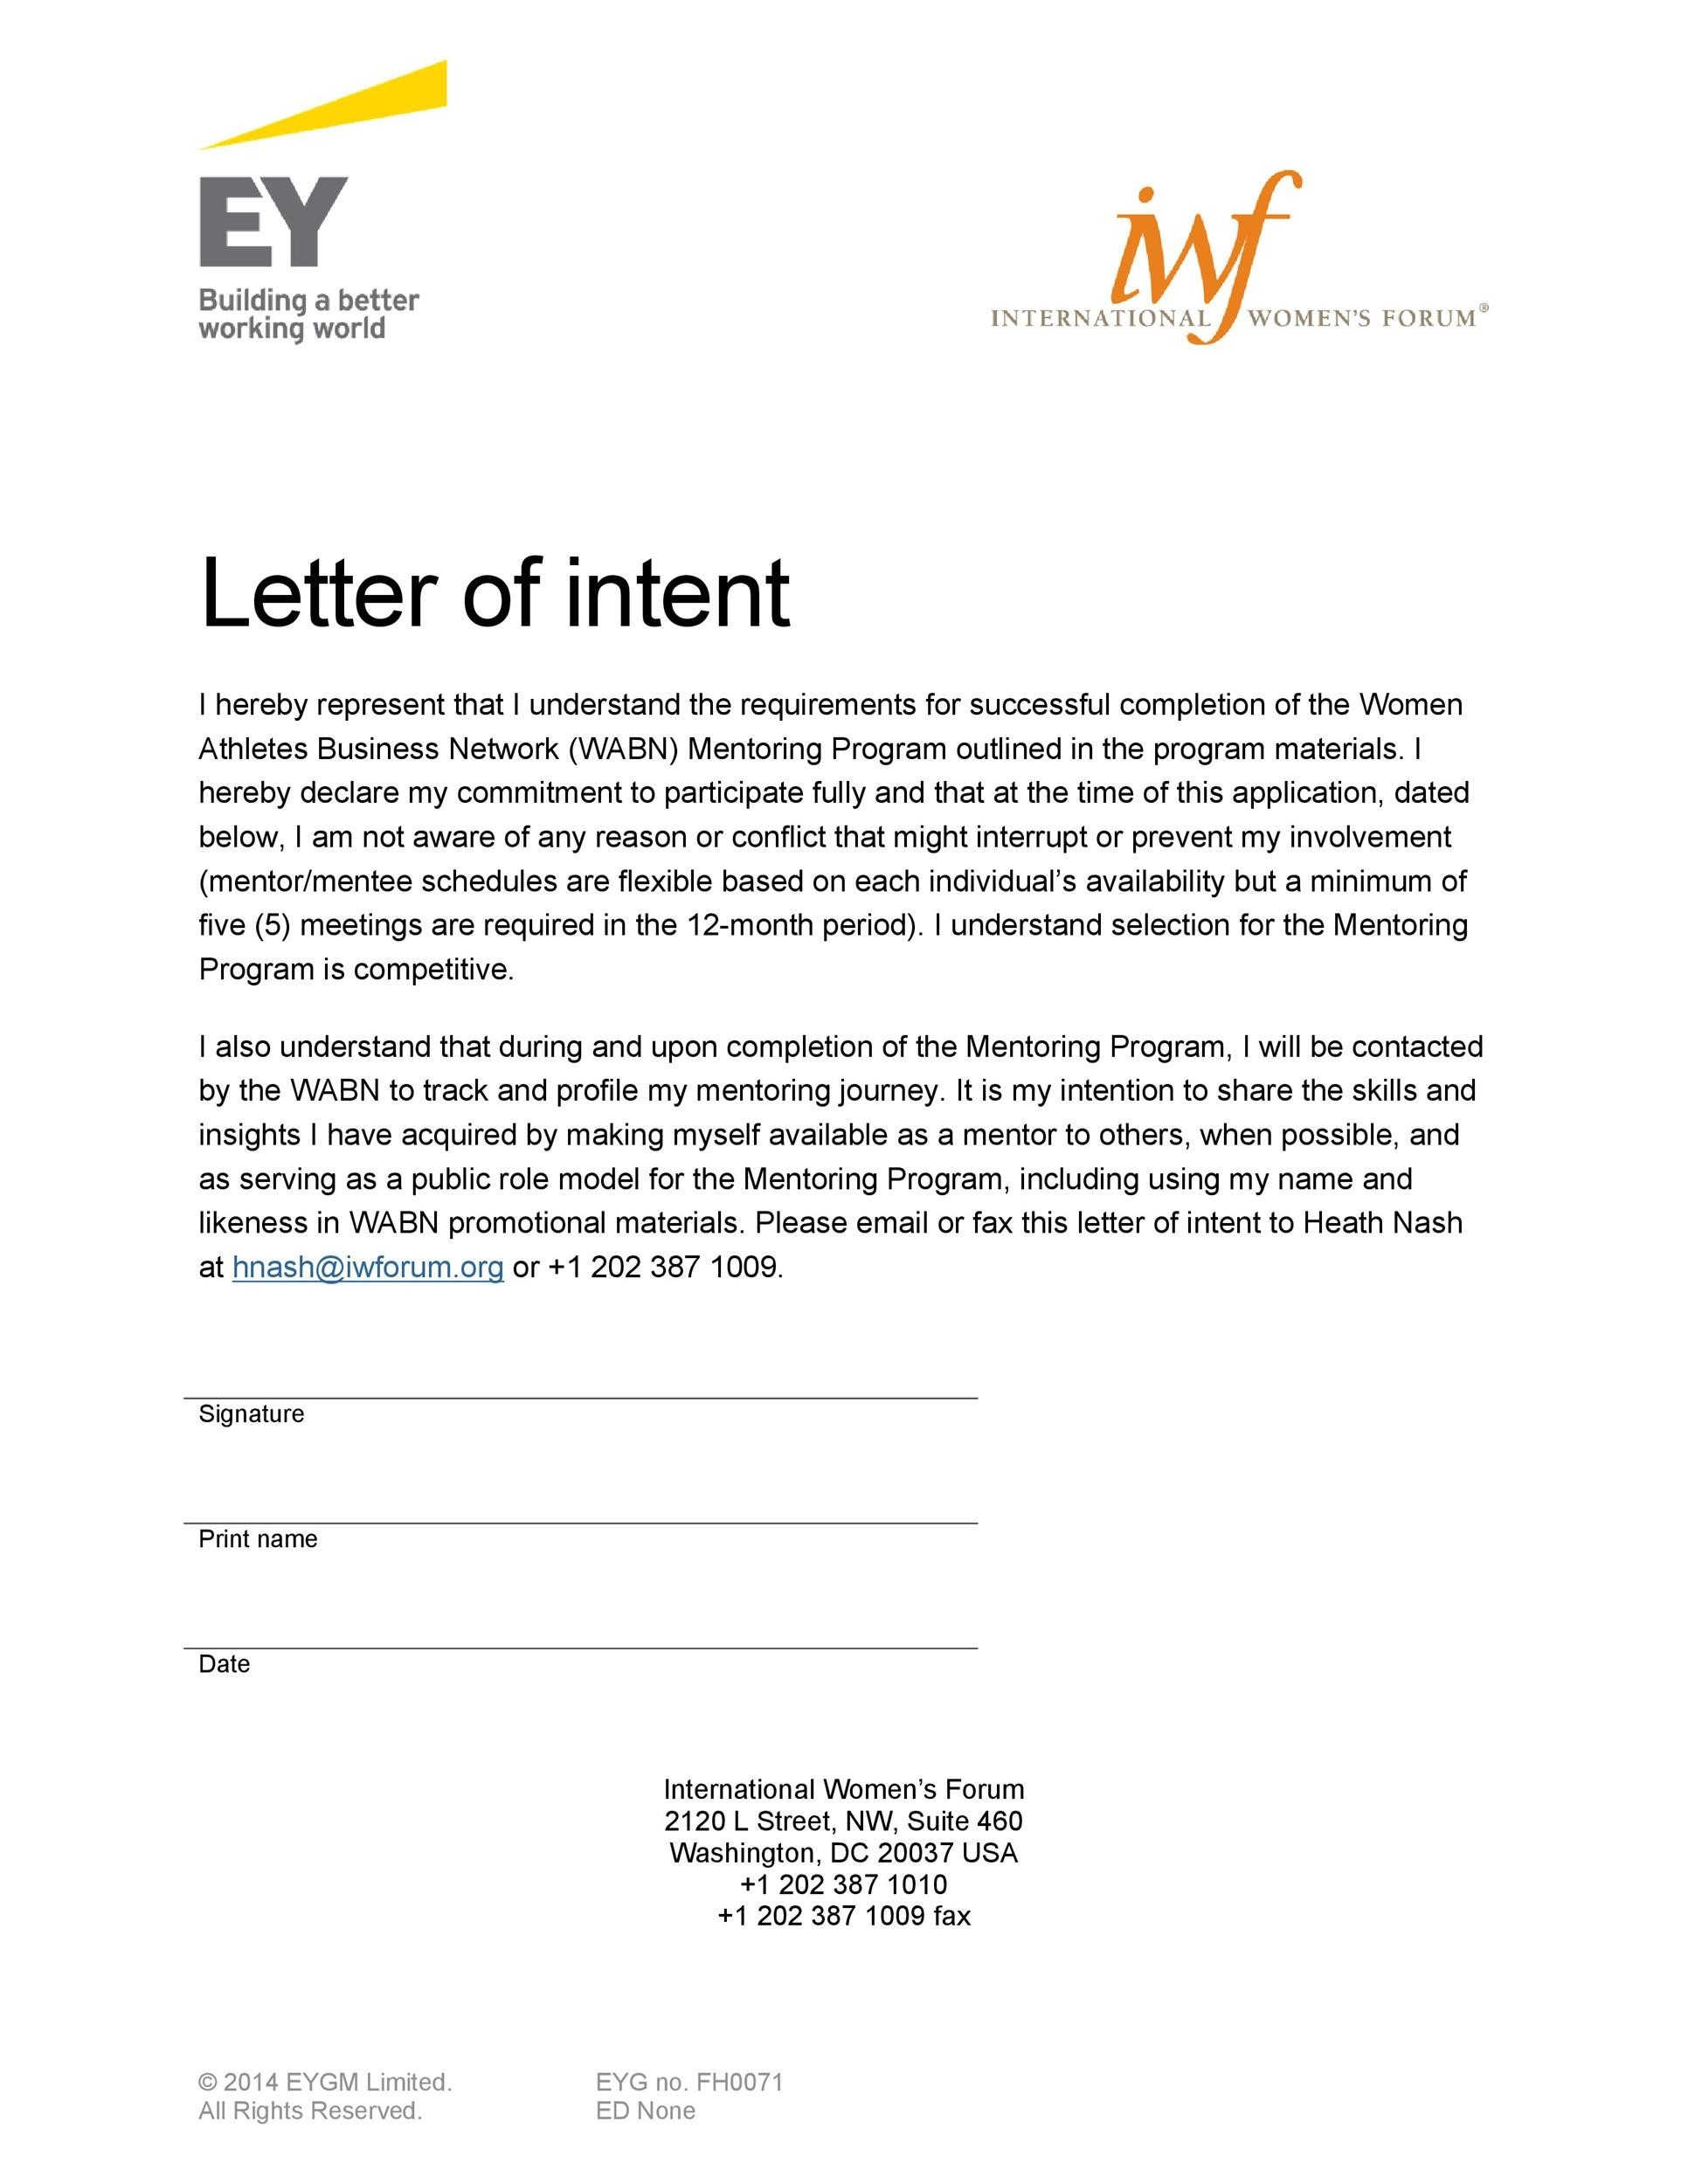 letter of intention format 40 letter of intent templates amp samples for school 22988 | letter of intent 12